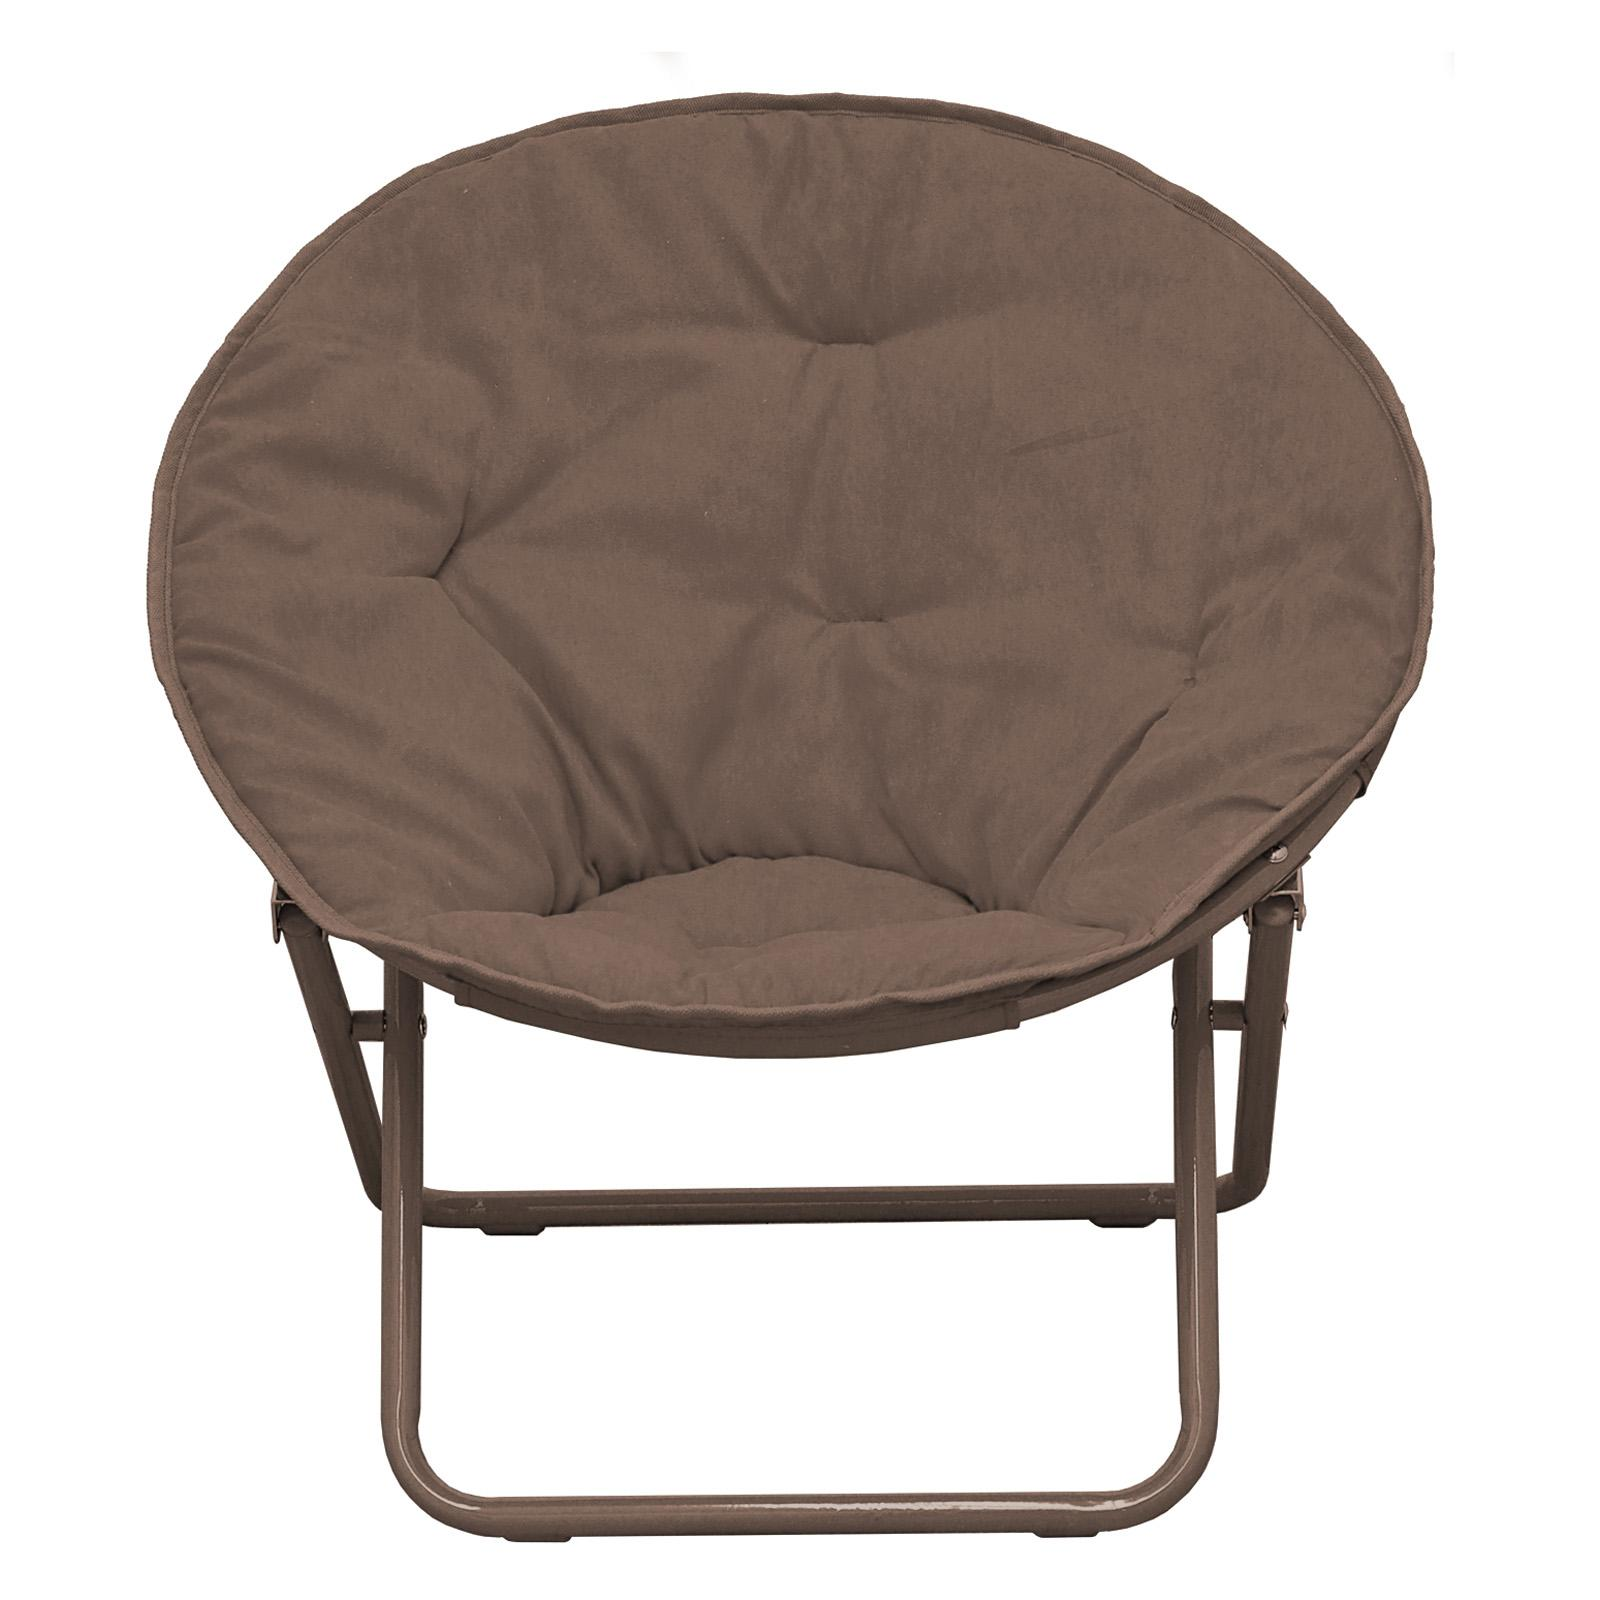 American Kids Solid Faux-Fur Saucer Chair Brown - WK656328